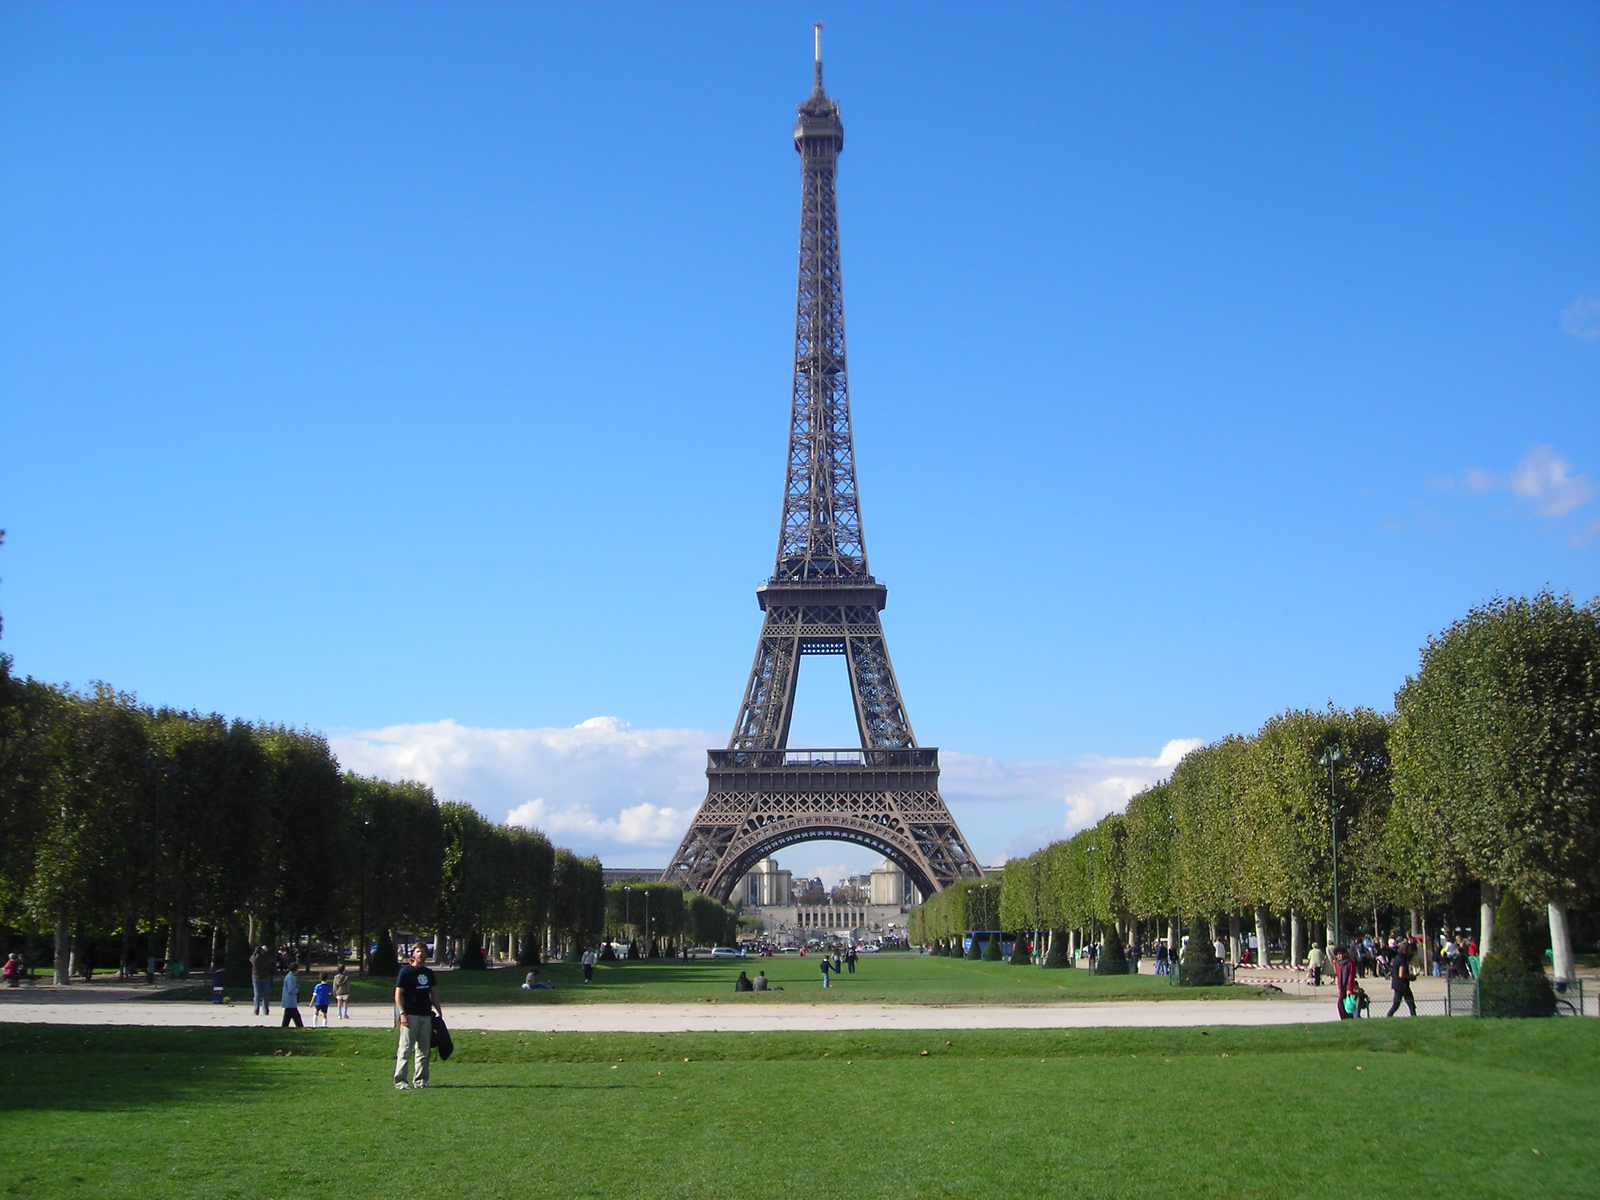 Went to Paris for the day, next time we'll stay longer.